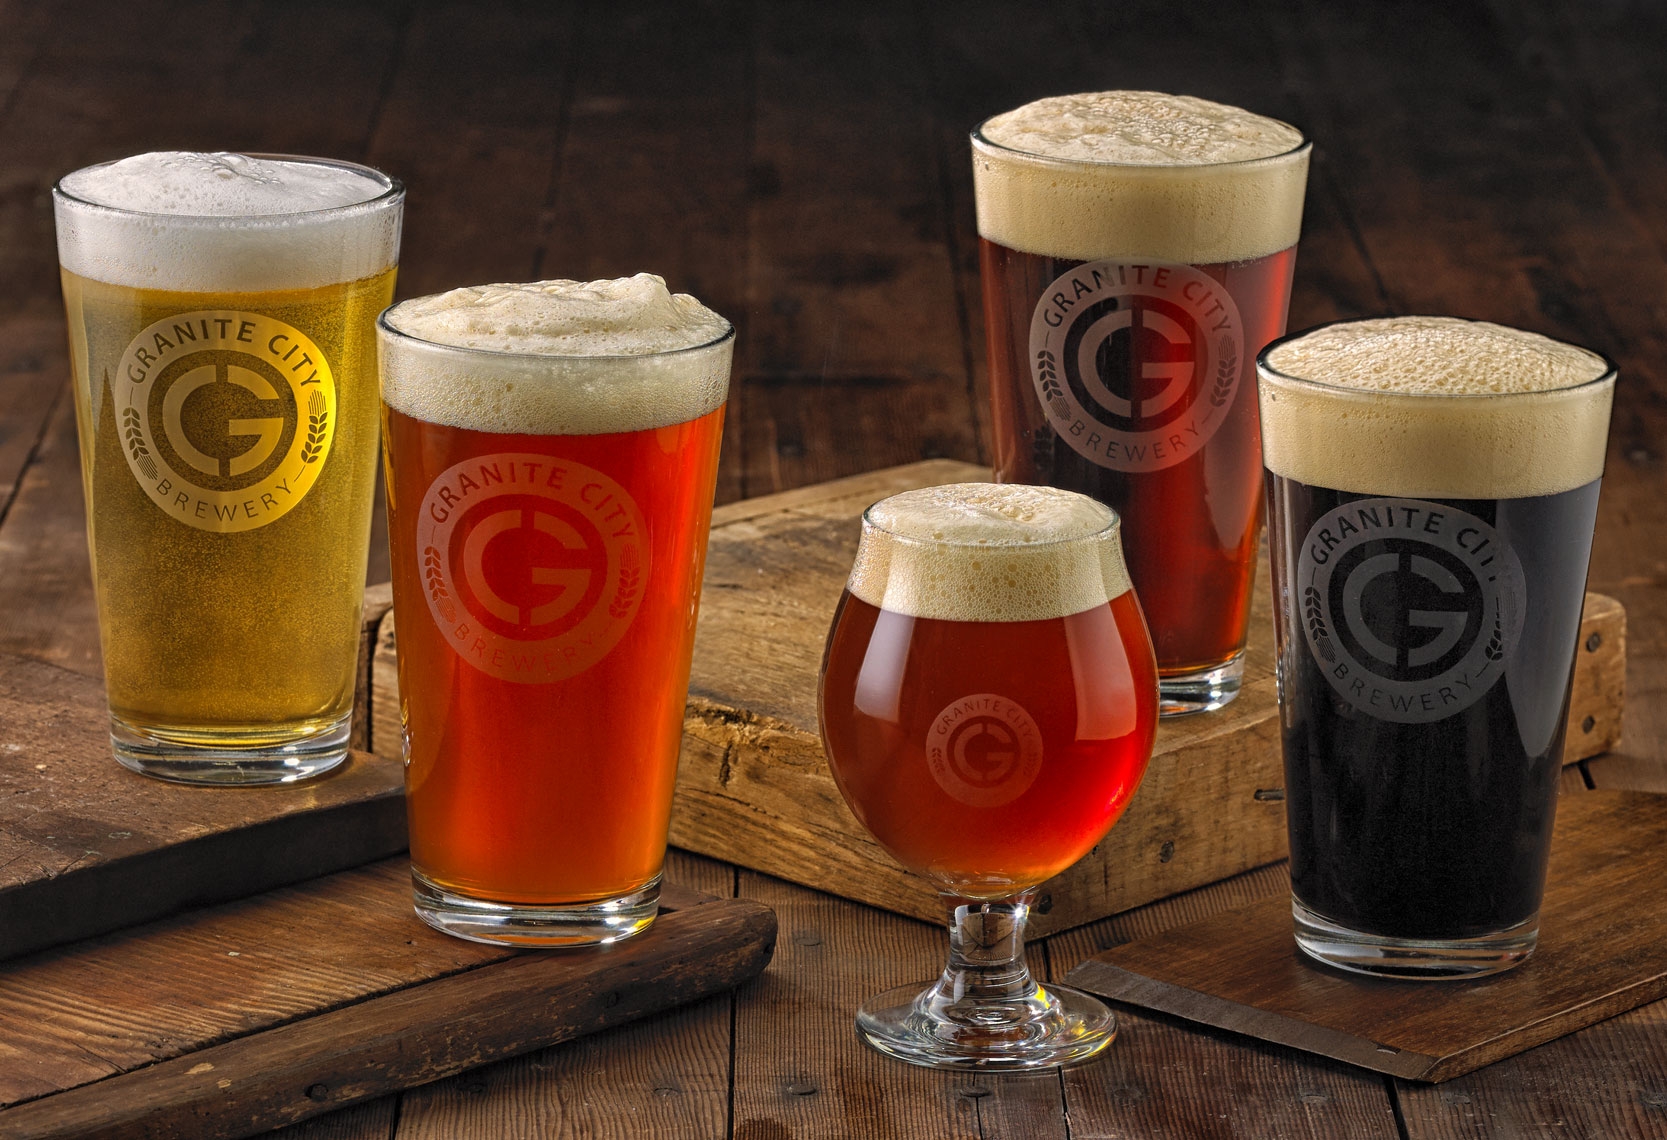 Granite City beer in glasses.  Each glass has a different flavor of beer. Food photography, InsideOut Studios.